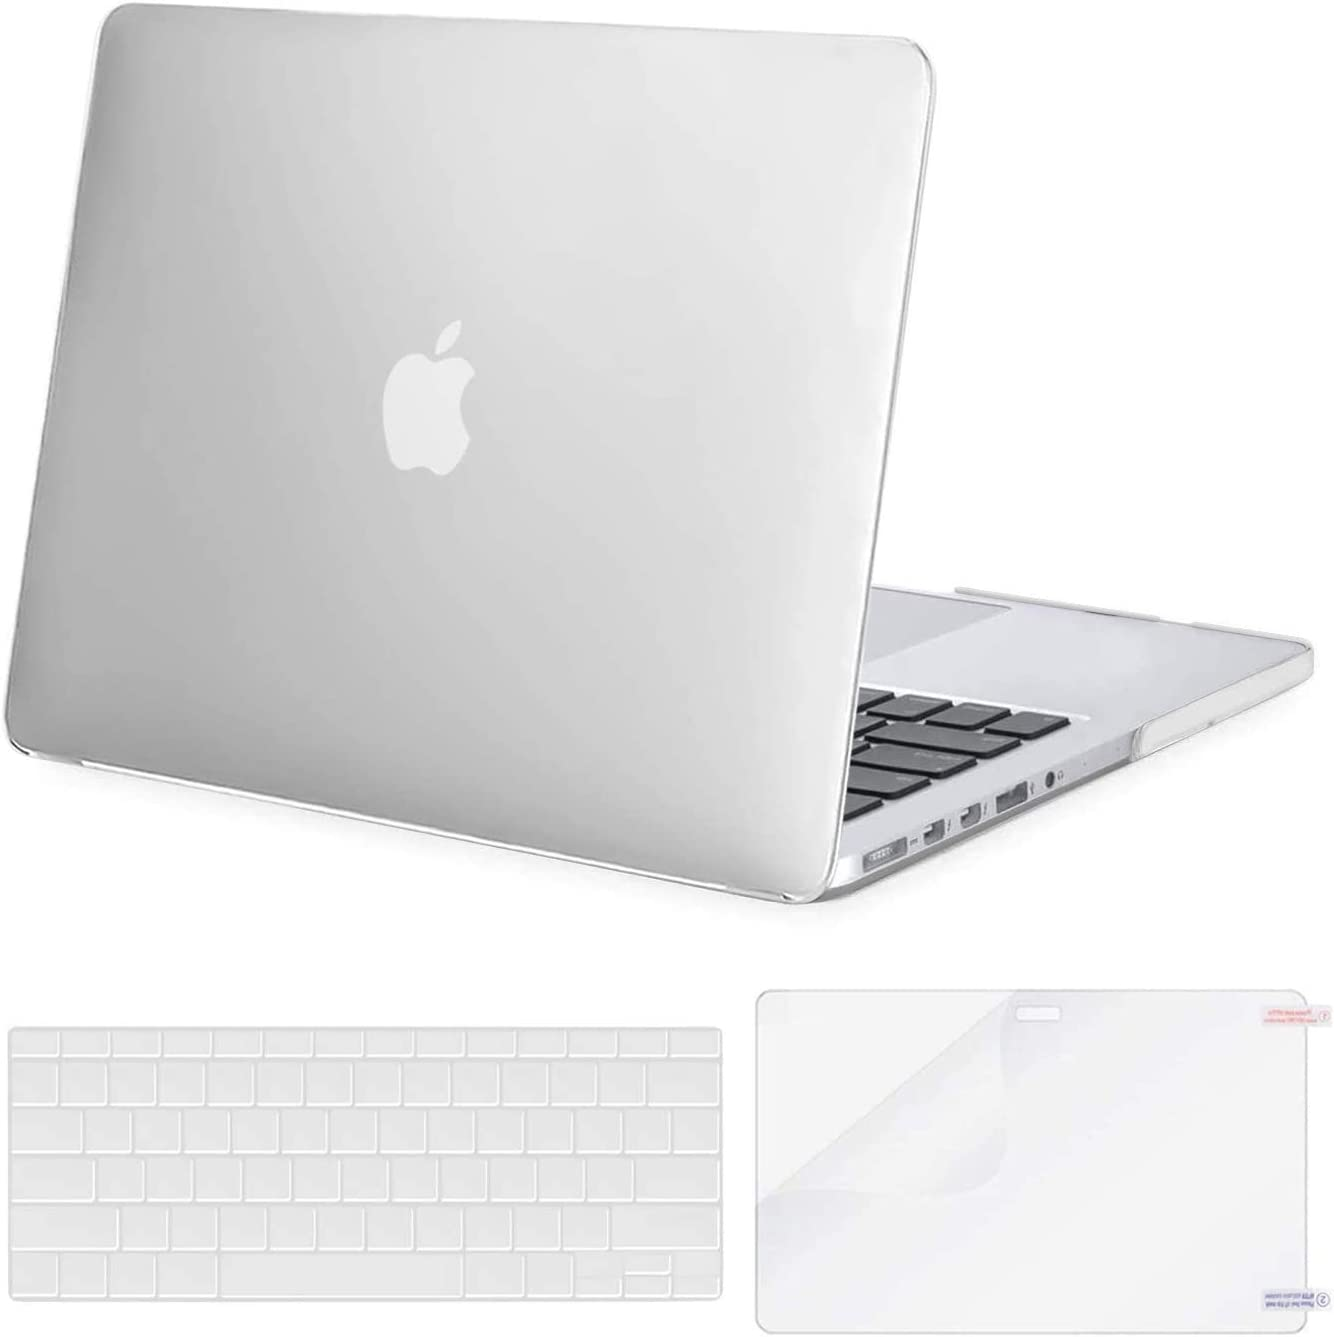 MOSISO Case Only Compatible with Older Version MacBook Pro Retina 13 inch (Models: A1502 & A1425) (Release 2015 - end 2012), Plastic Hard Shell Case & Keyboard Cover & Screen Protector, Frost